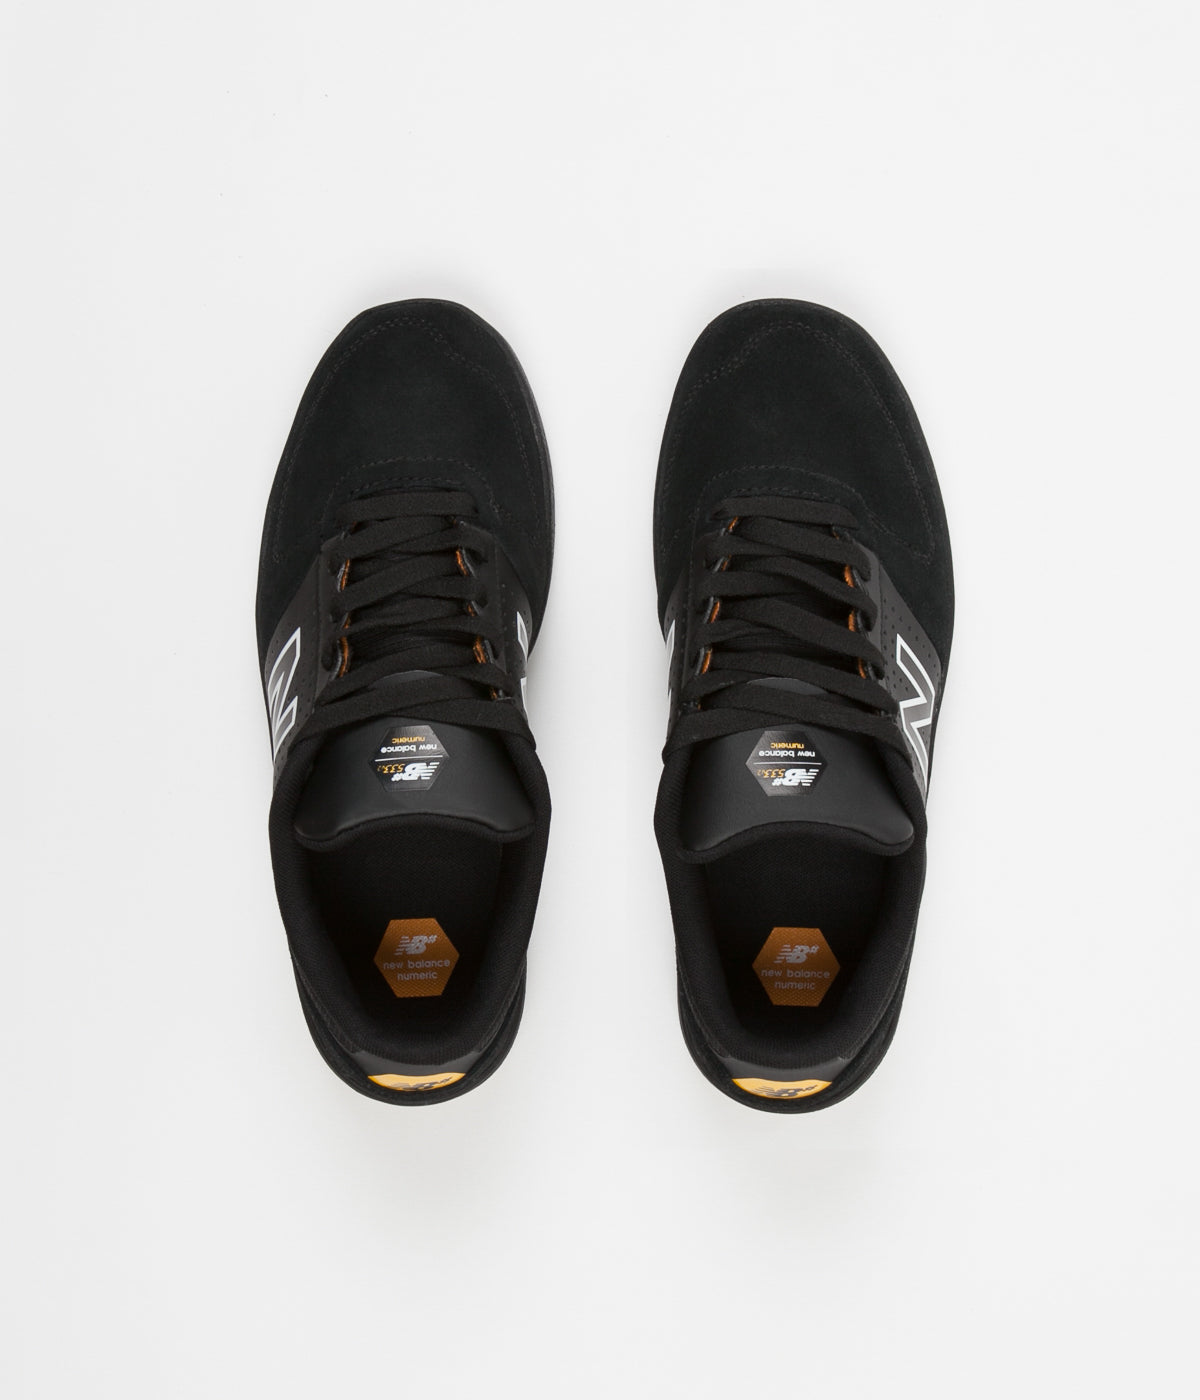 New Balance Numeric PJ Ladd 533 Shoes - Black / Gold Rush